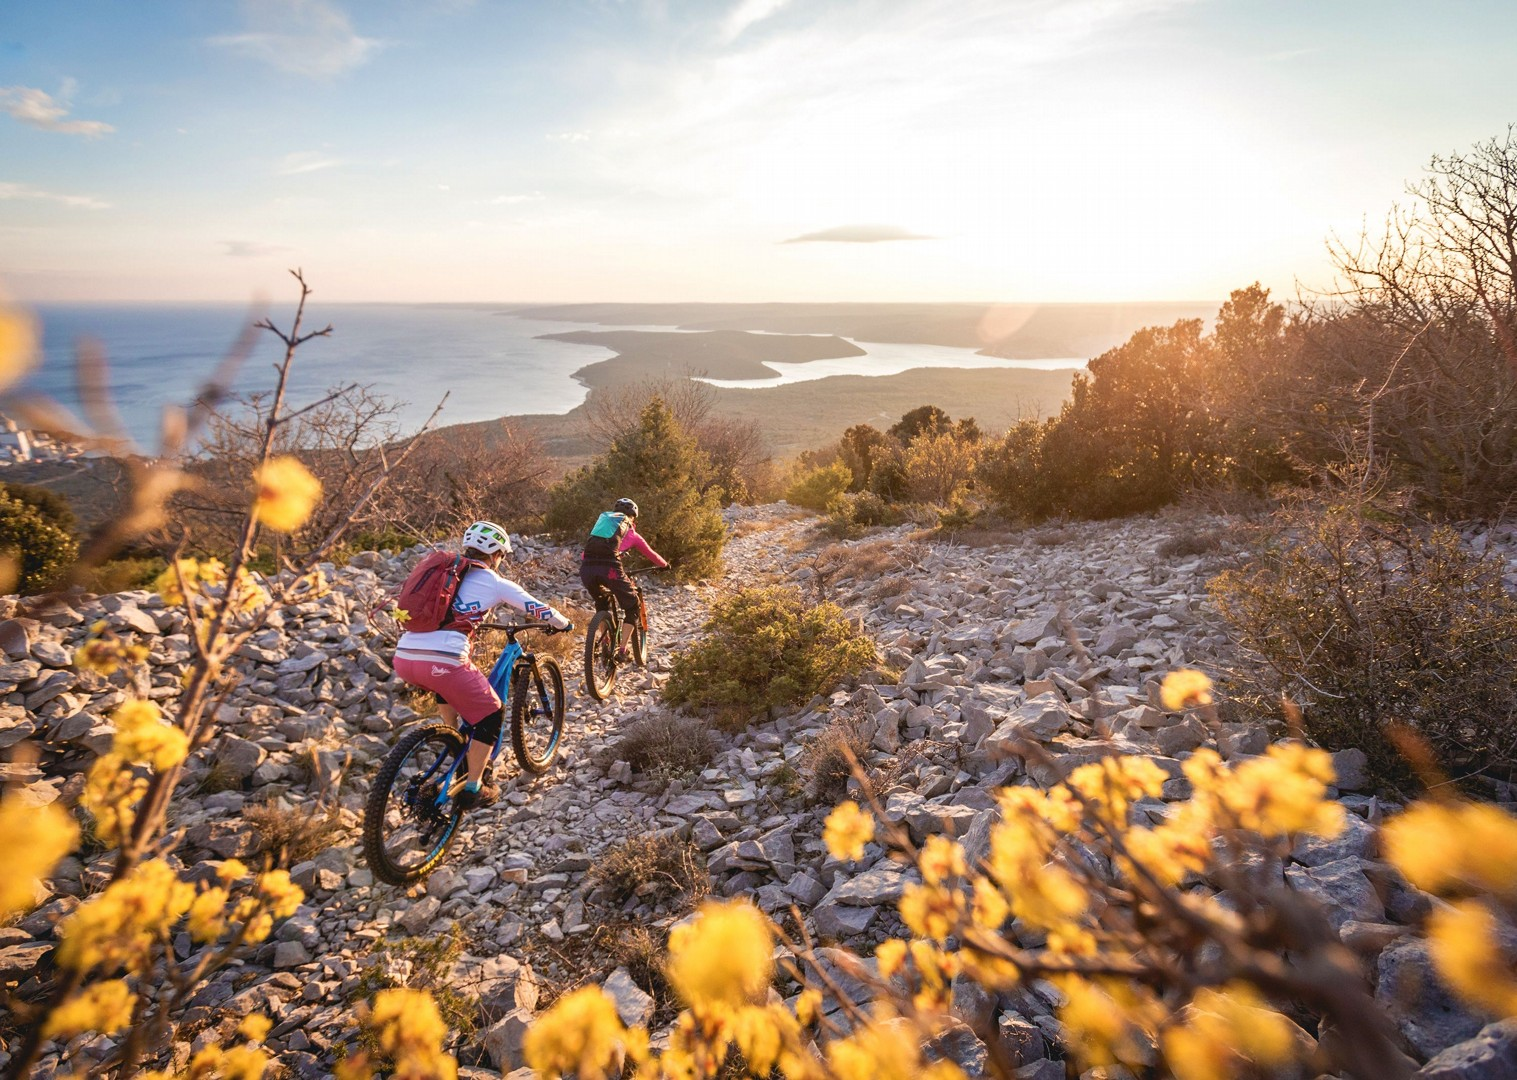 saddle-skedaddle-croatia-terra-magica-electric-mountain-biking-holiday.jpg - NEW! Croatia - Terra Magica - eMTB - Mountain Biking